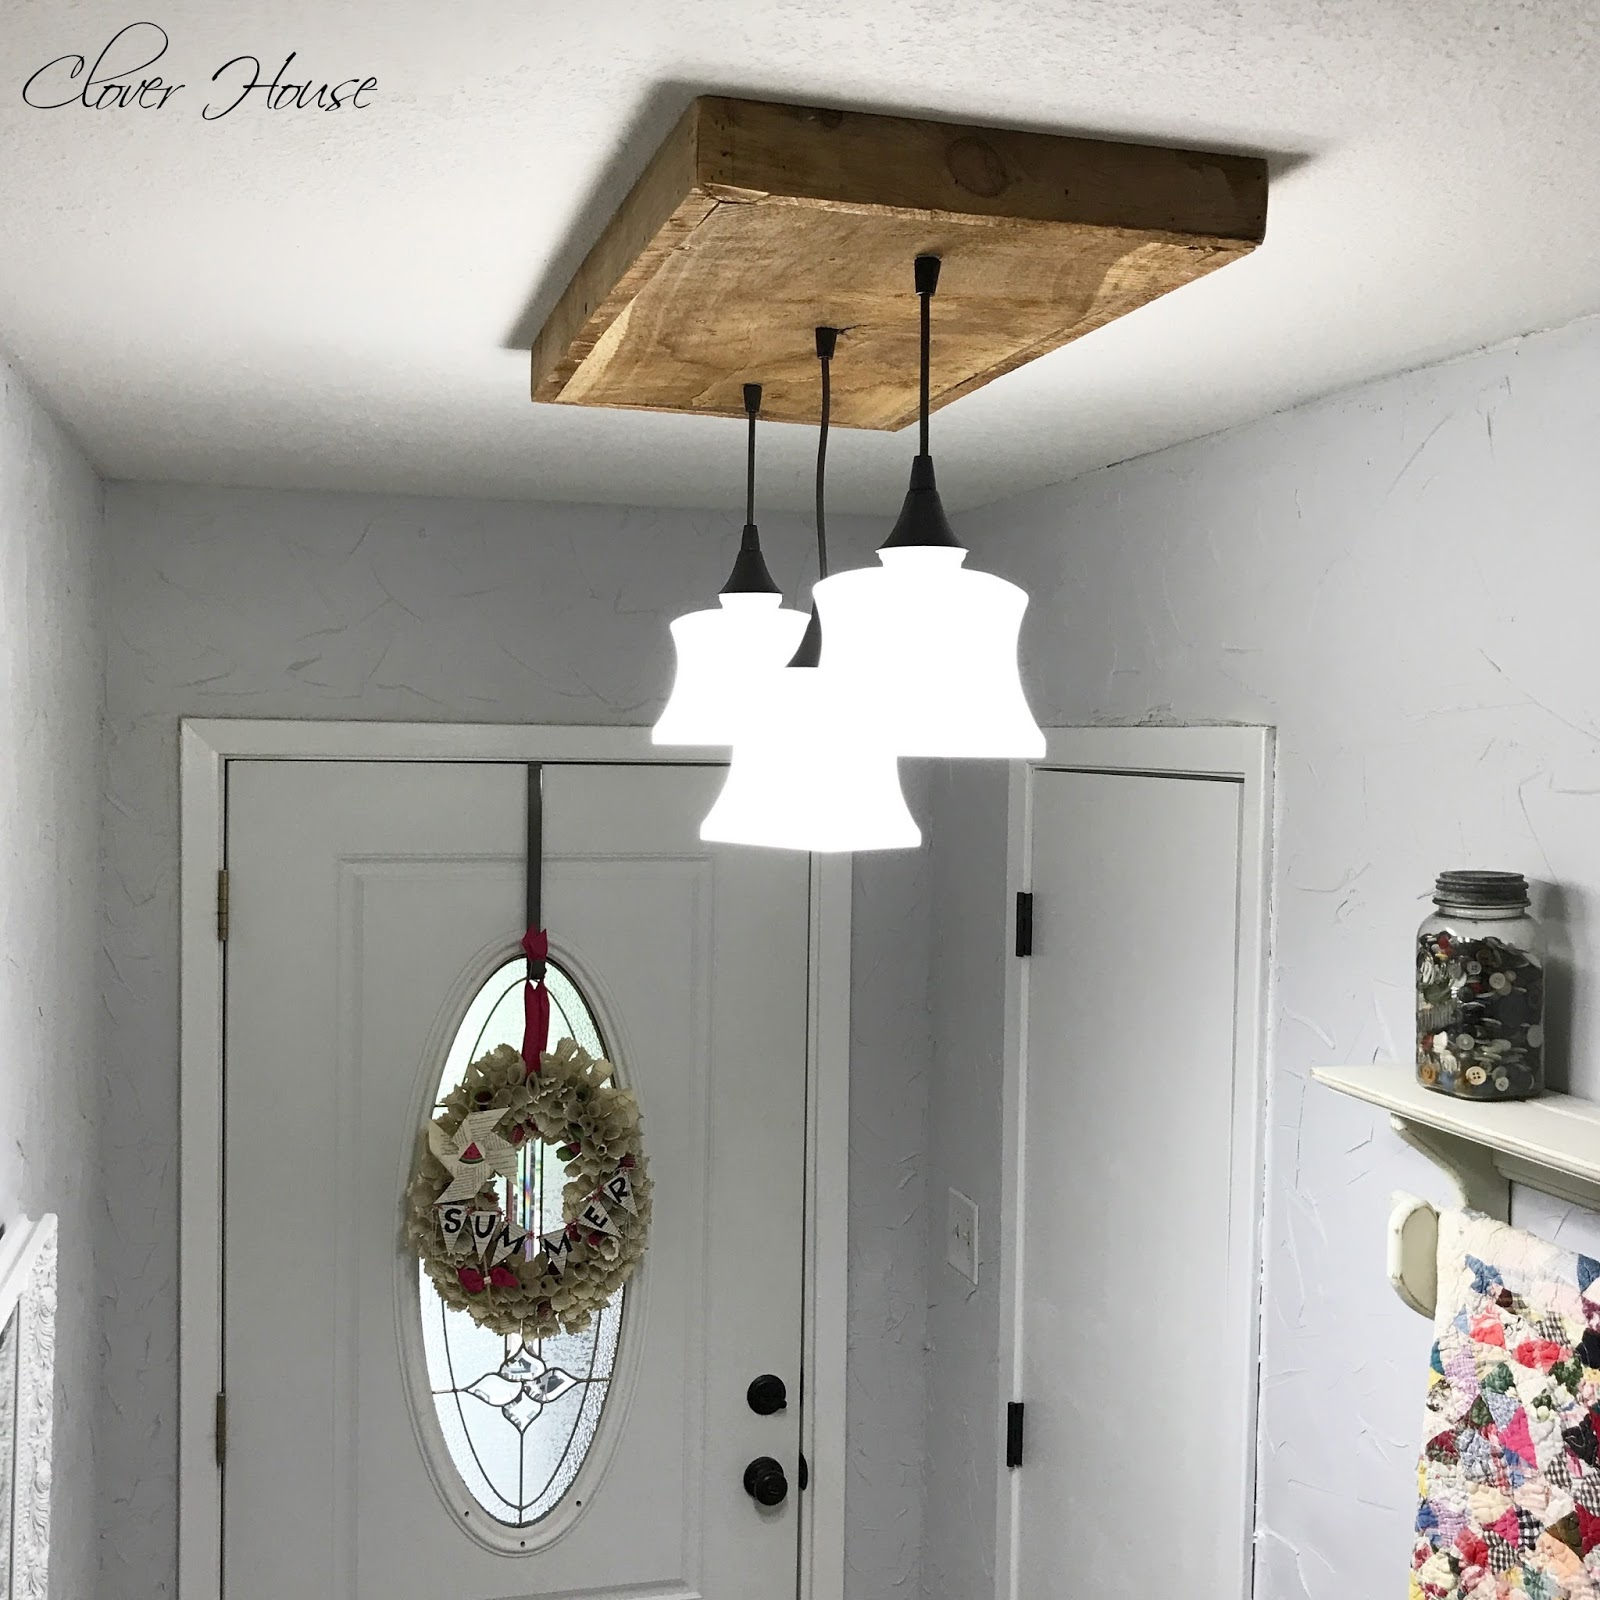 Wood Lighting Fixtures: Clover House: DIY Barn Wood Light Fixture